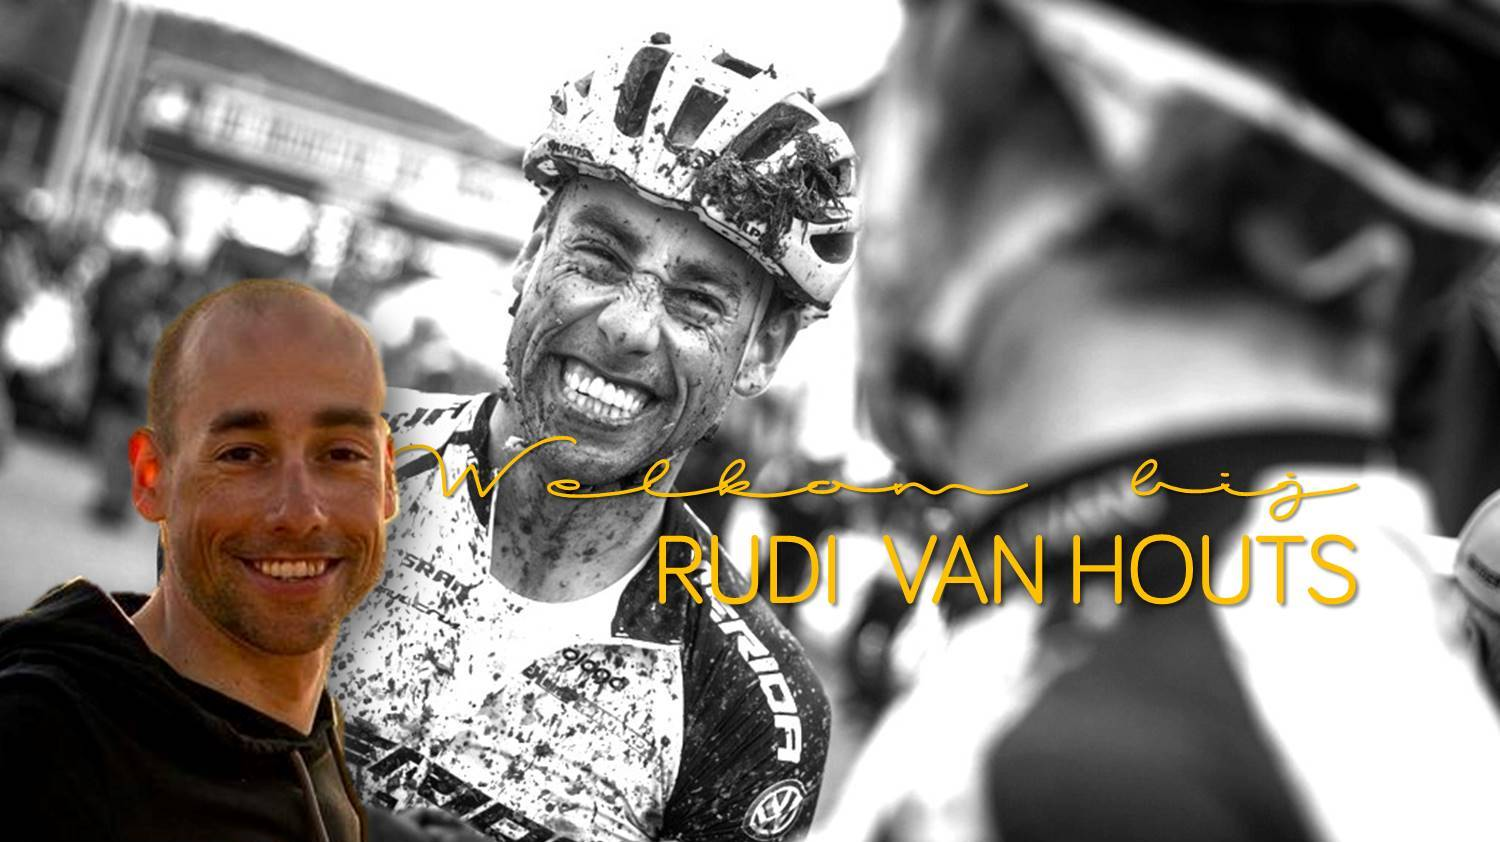 Rudi van Houts | Official website